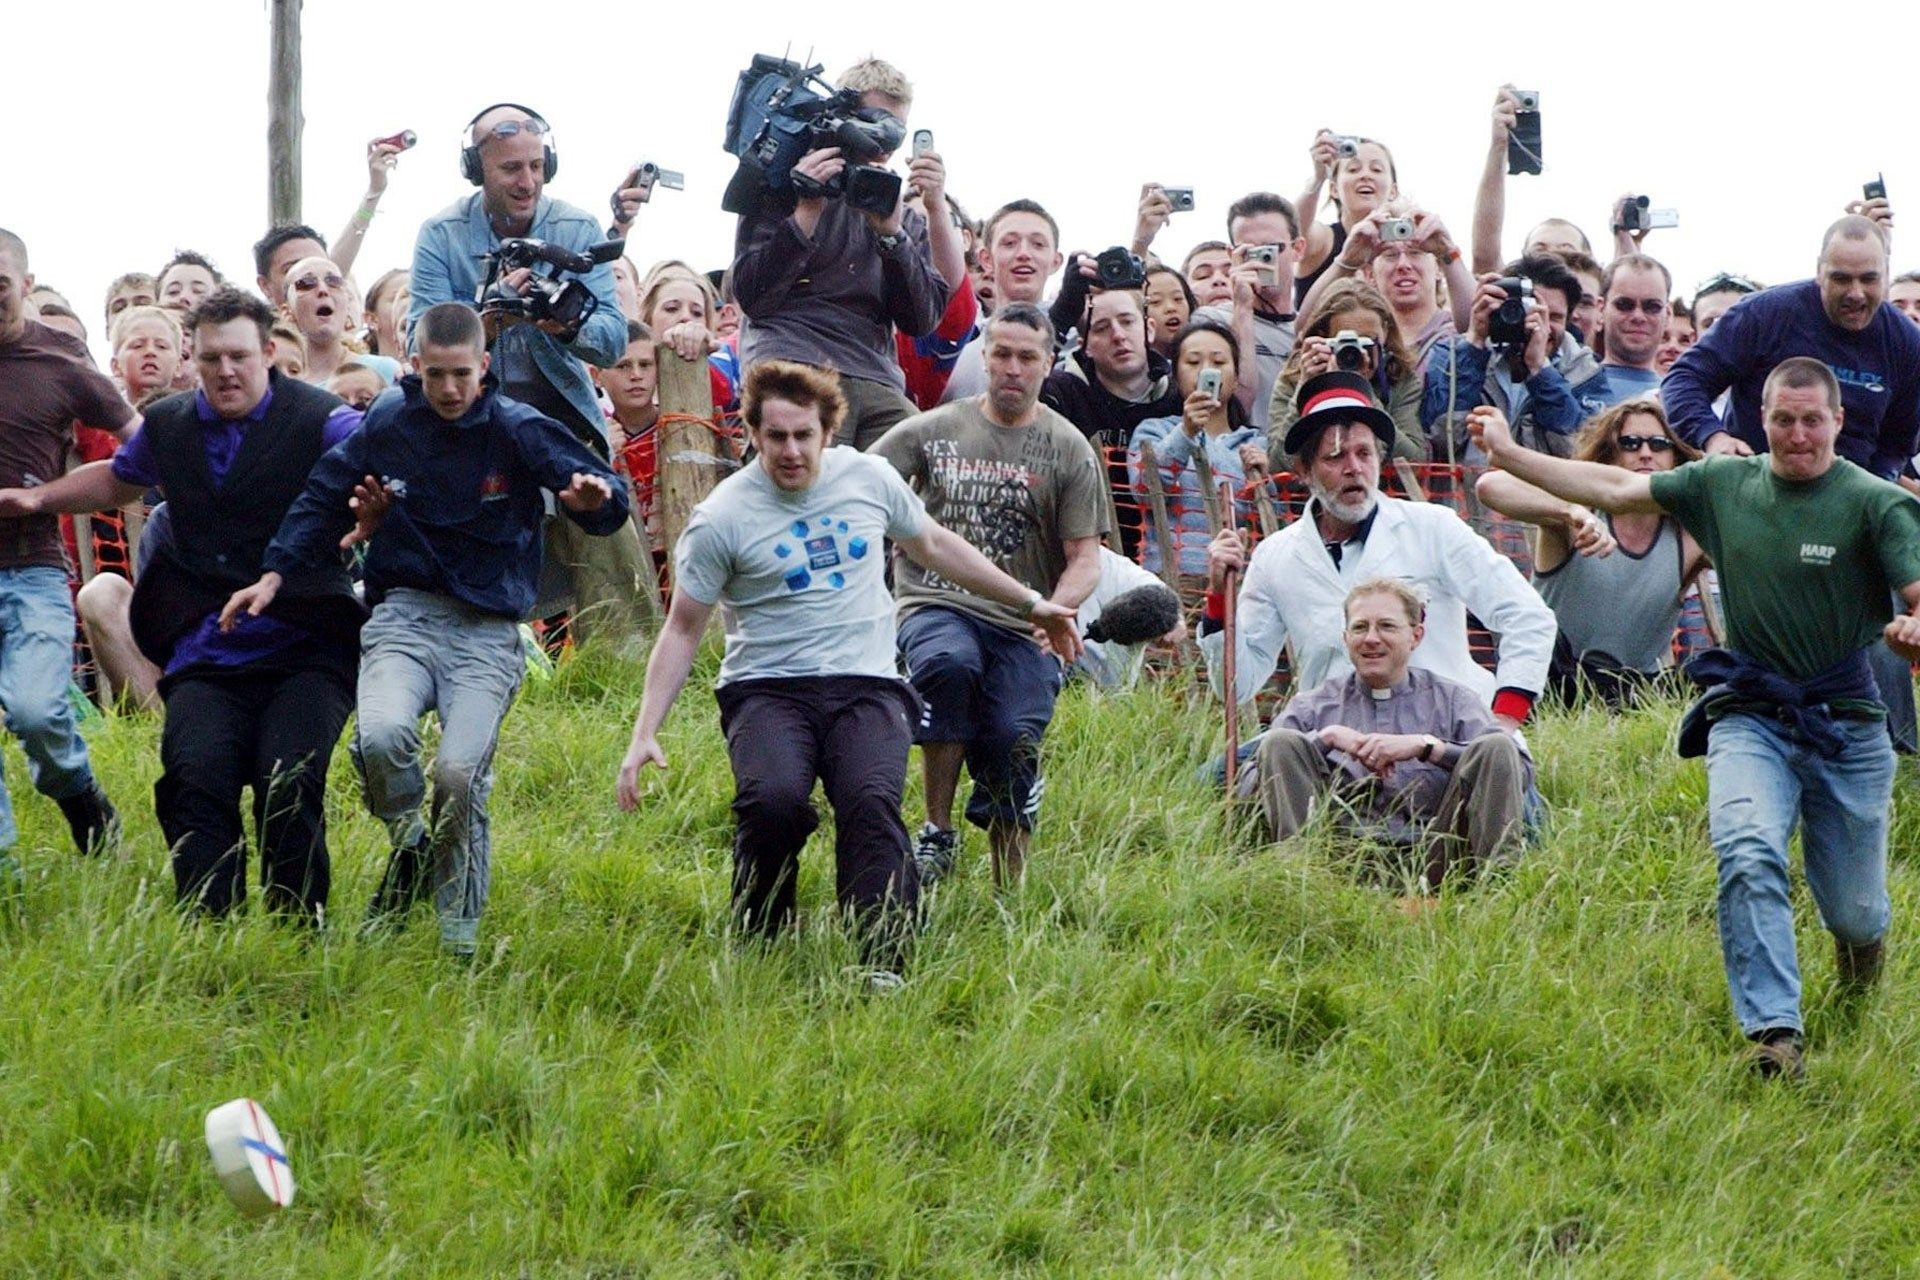 Cheese Rolling Its not a sport. Its a tradition! A 9 lb